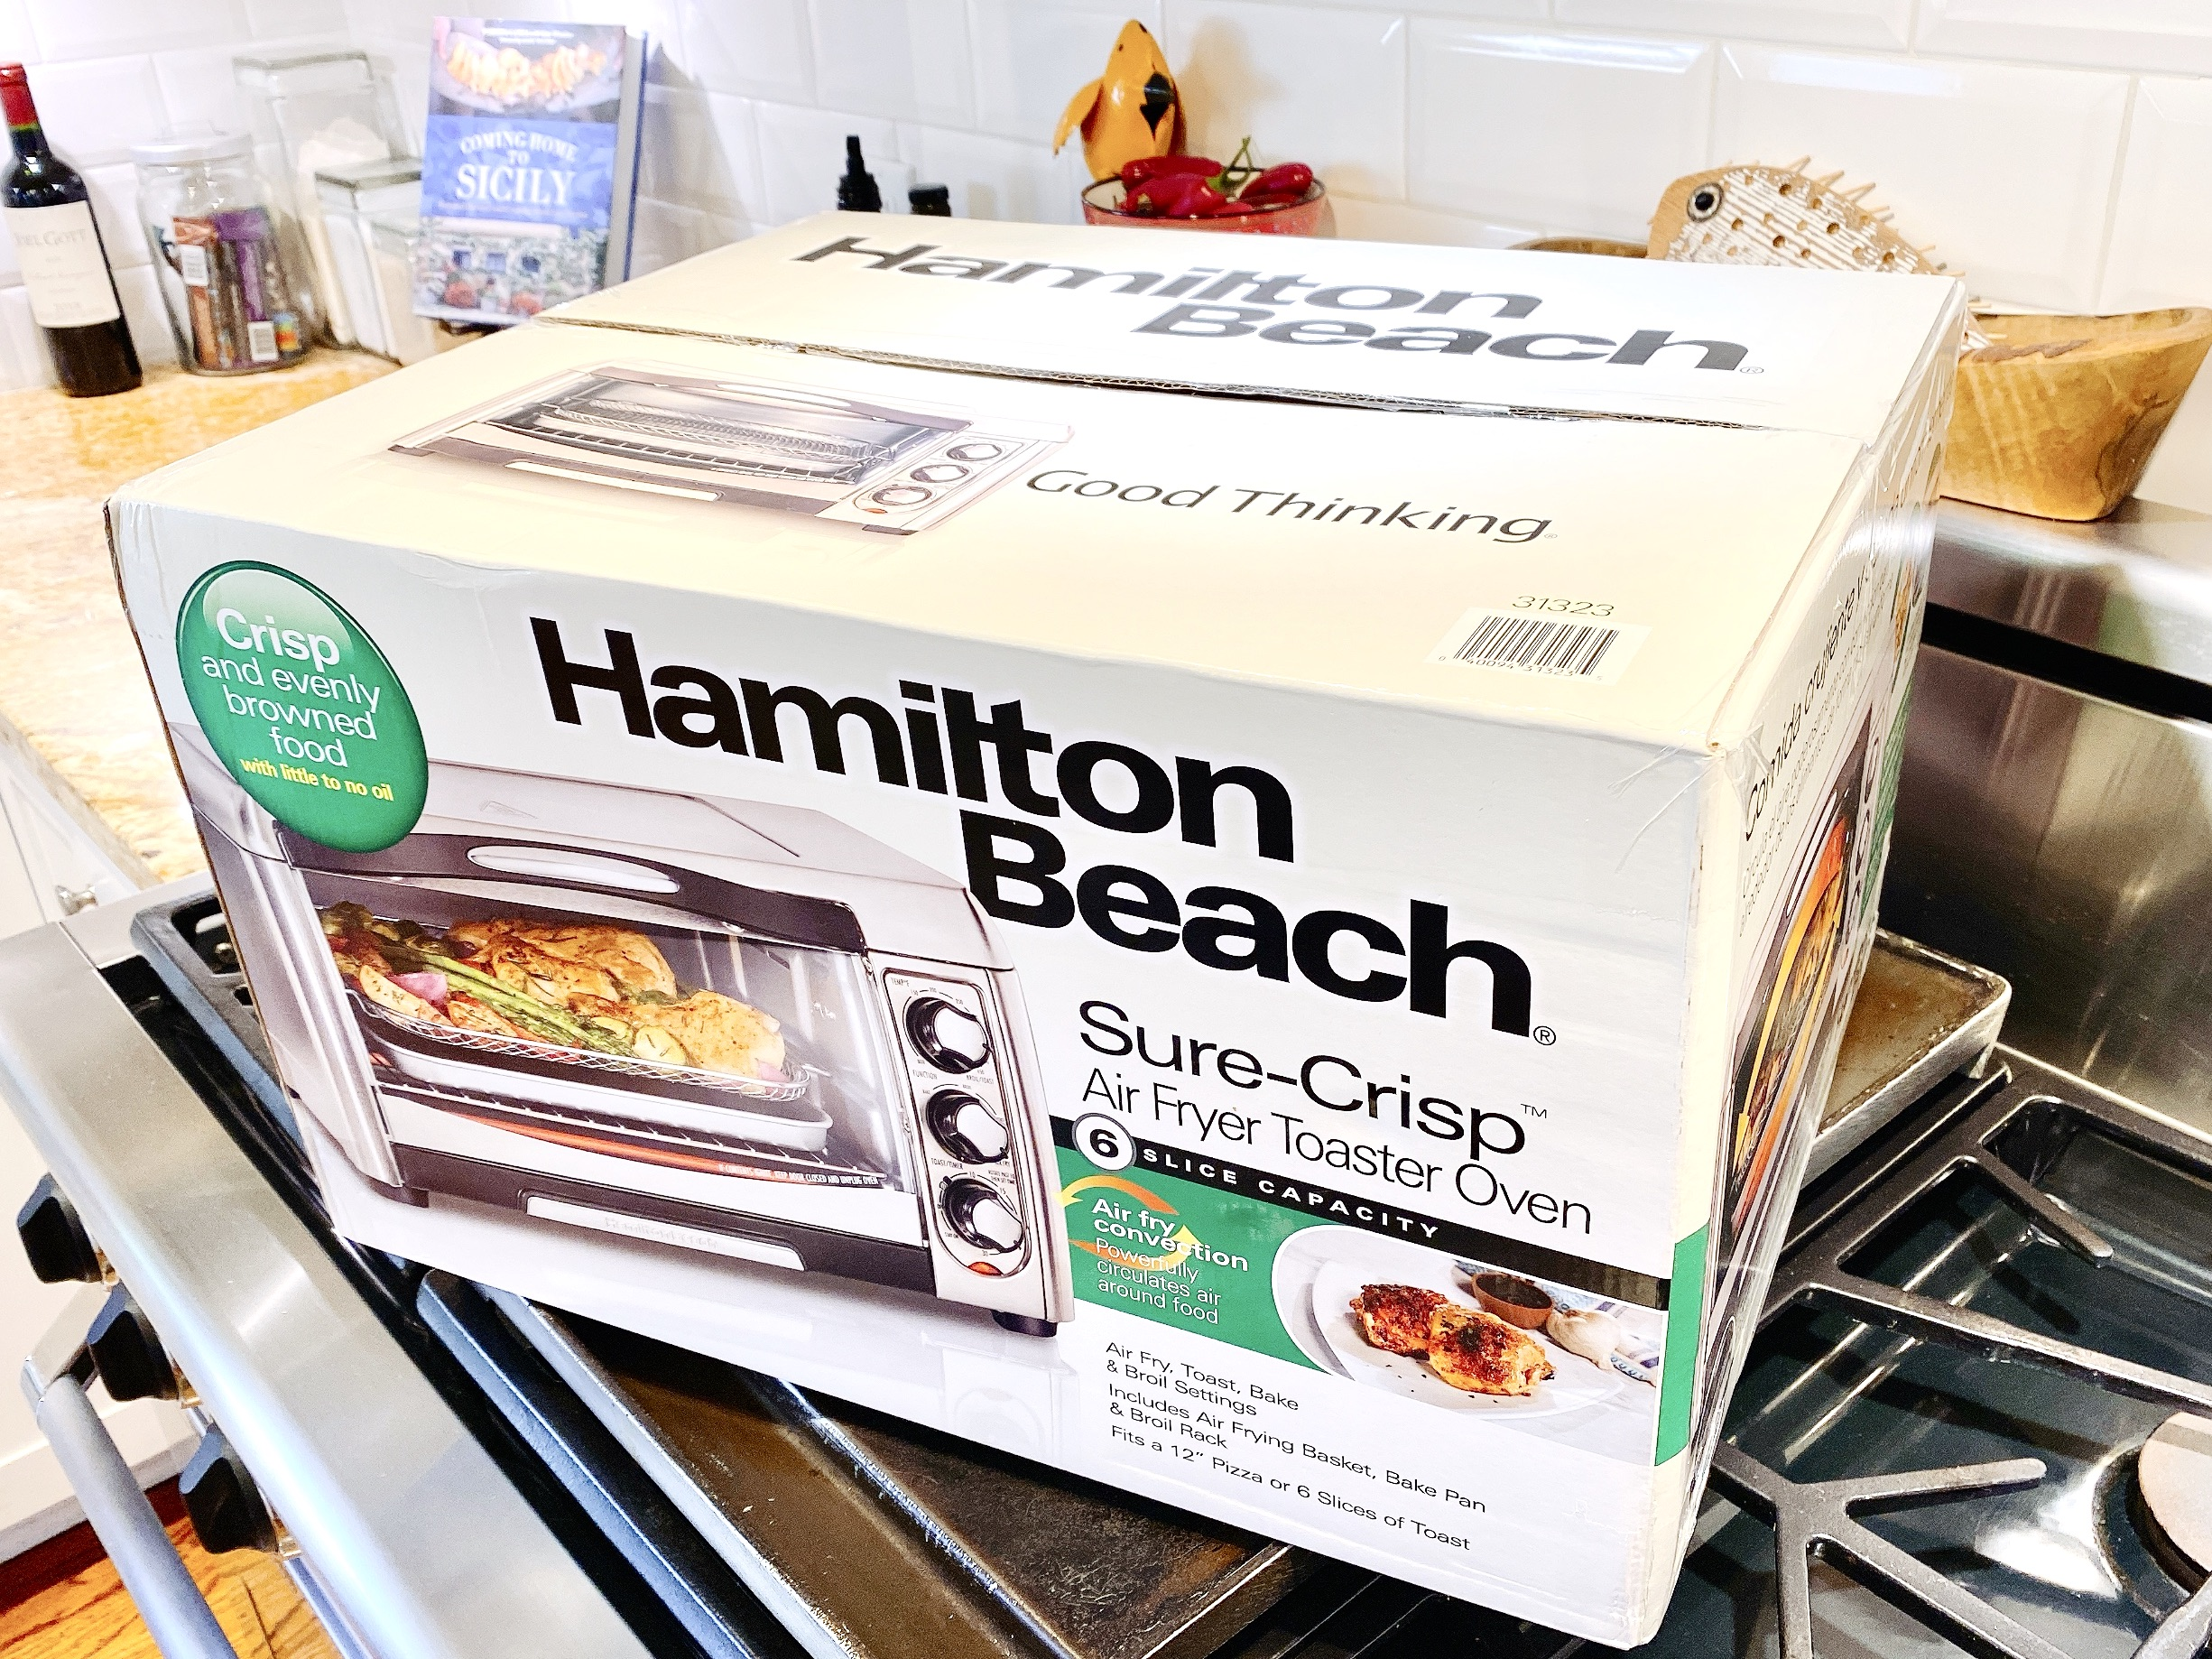 Hamilton Beach Sure-Crisp Air Fry Toaster Oven in box